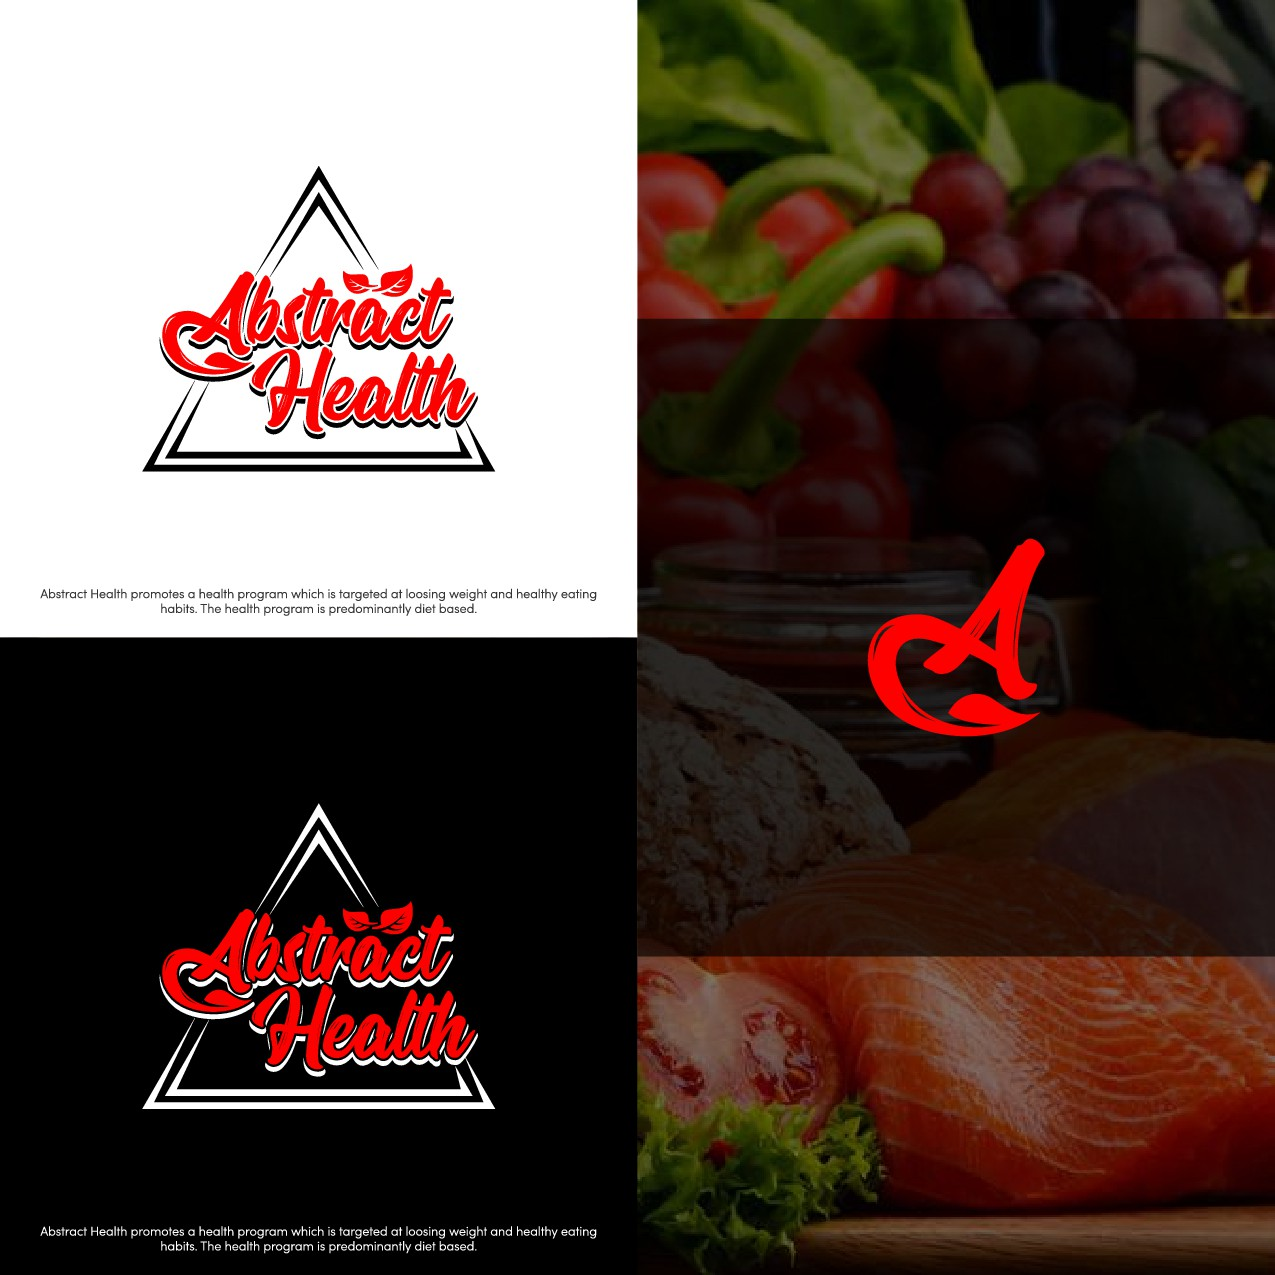 Logo and Website for a Health and Weight Loss Program